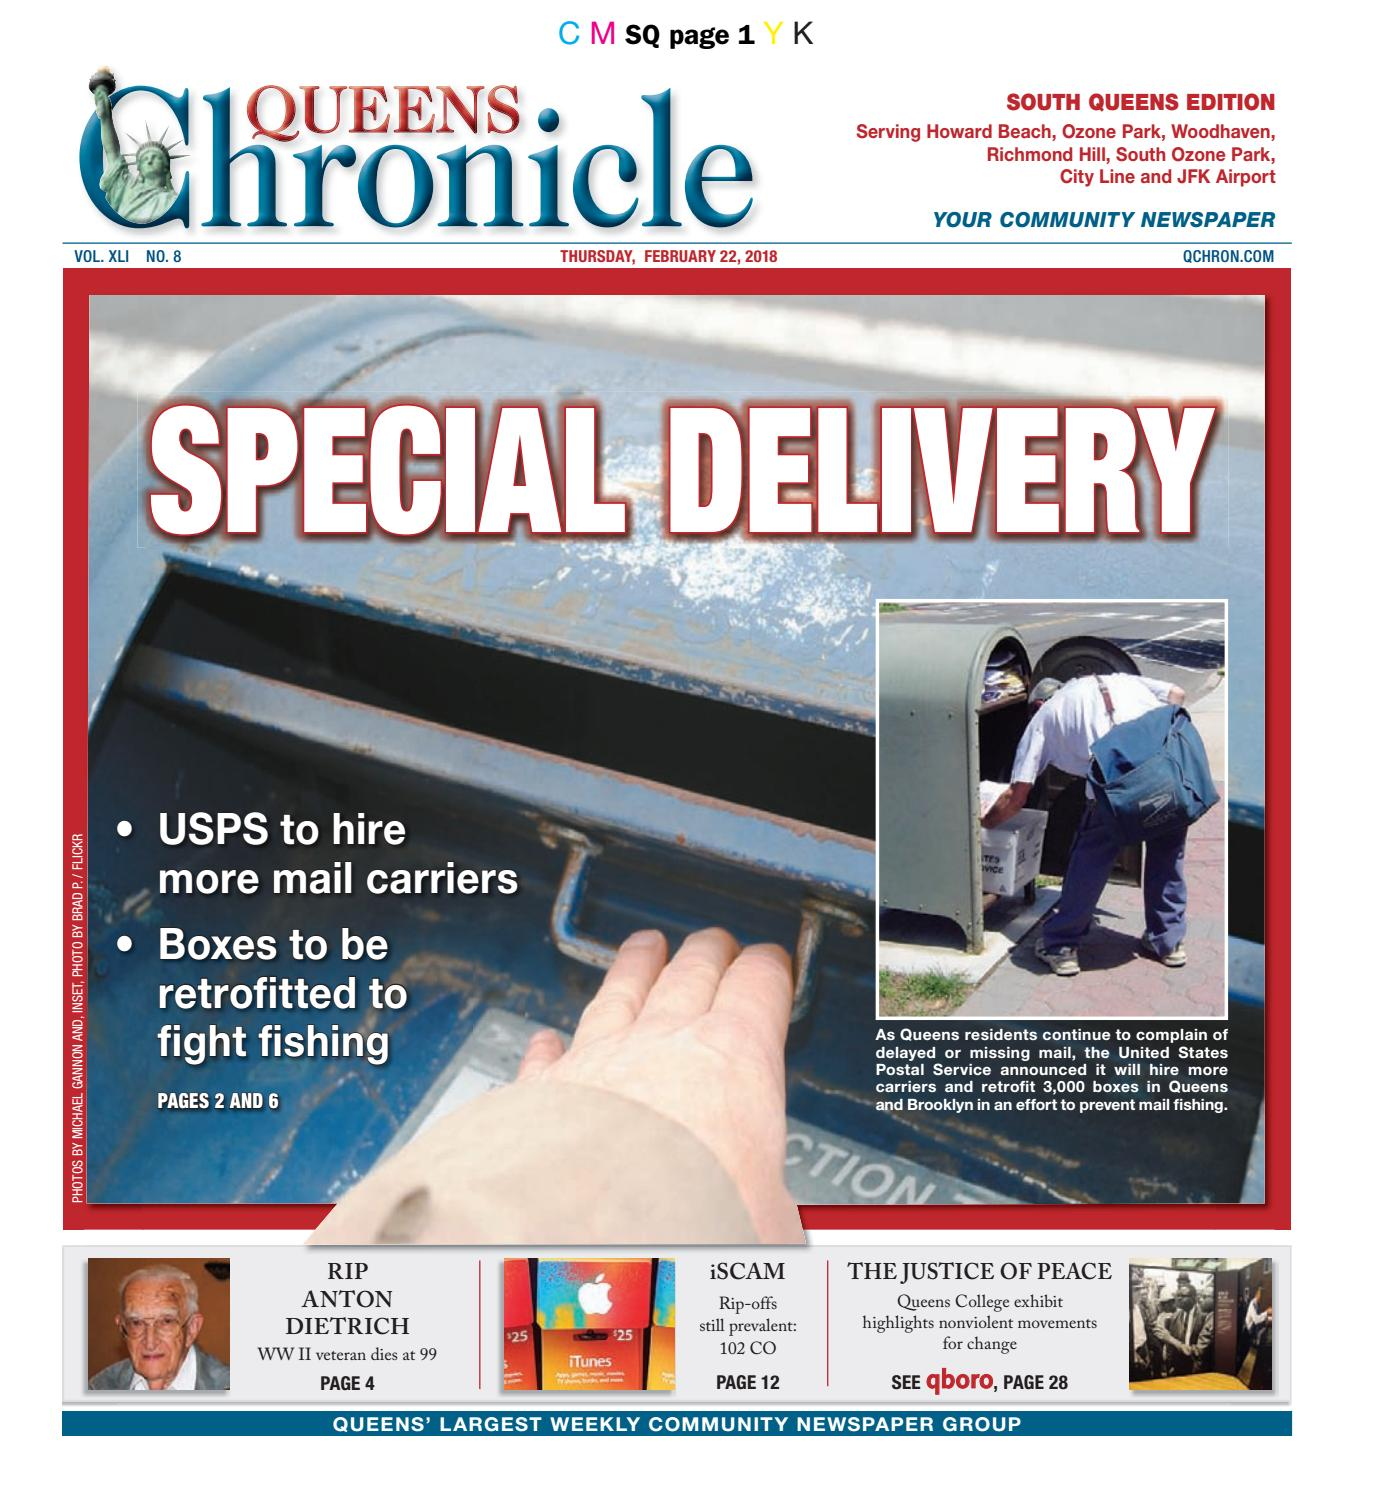 queens chronicle south edition 02-22-18queens chronicle - issuu